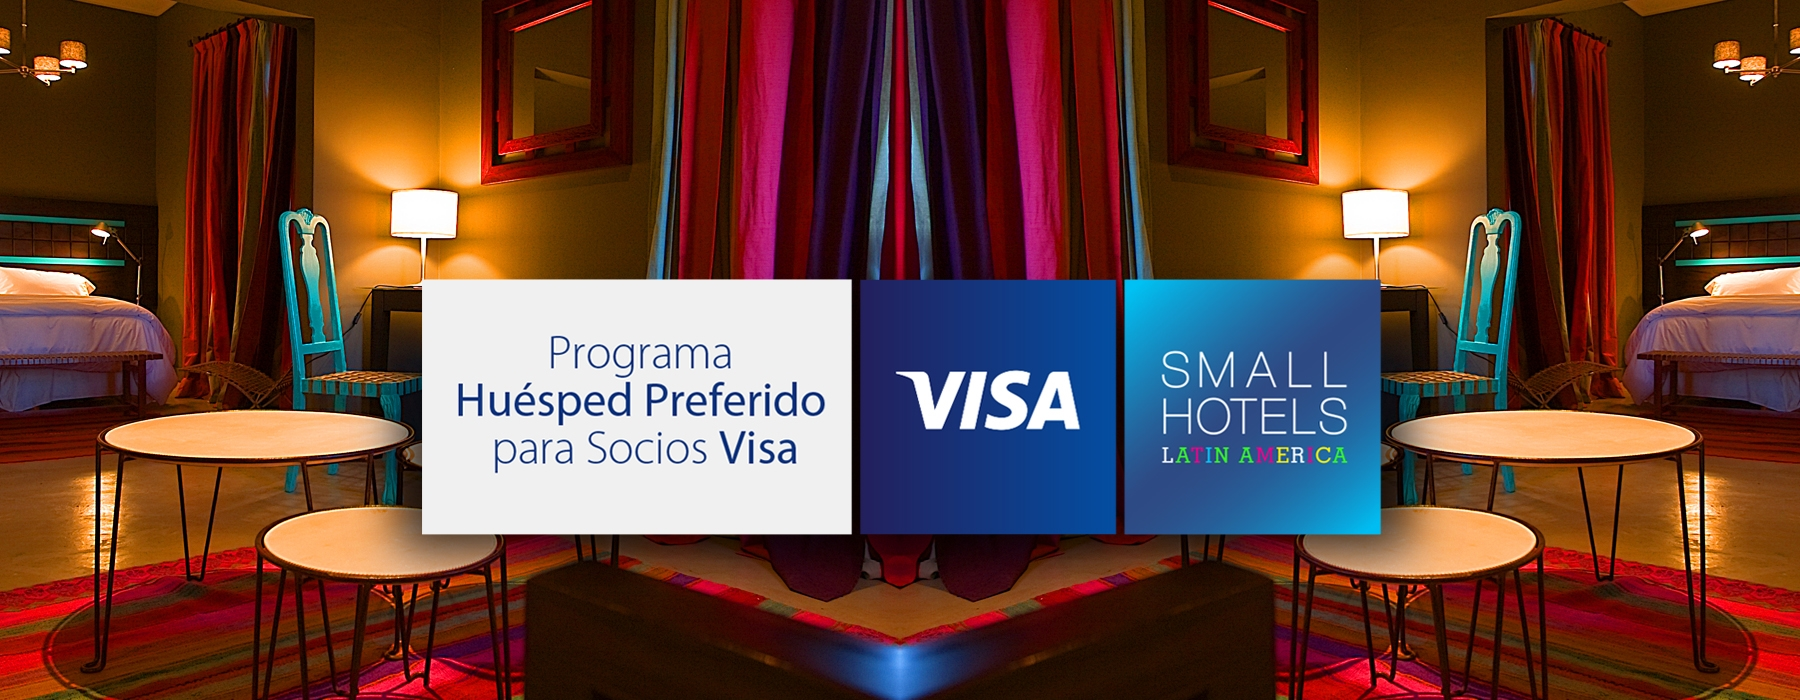 Visa Small Hotels Latin America